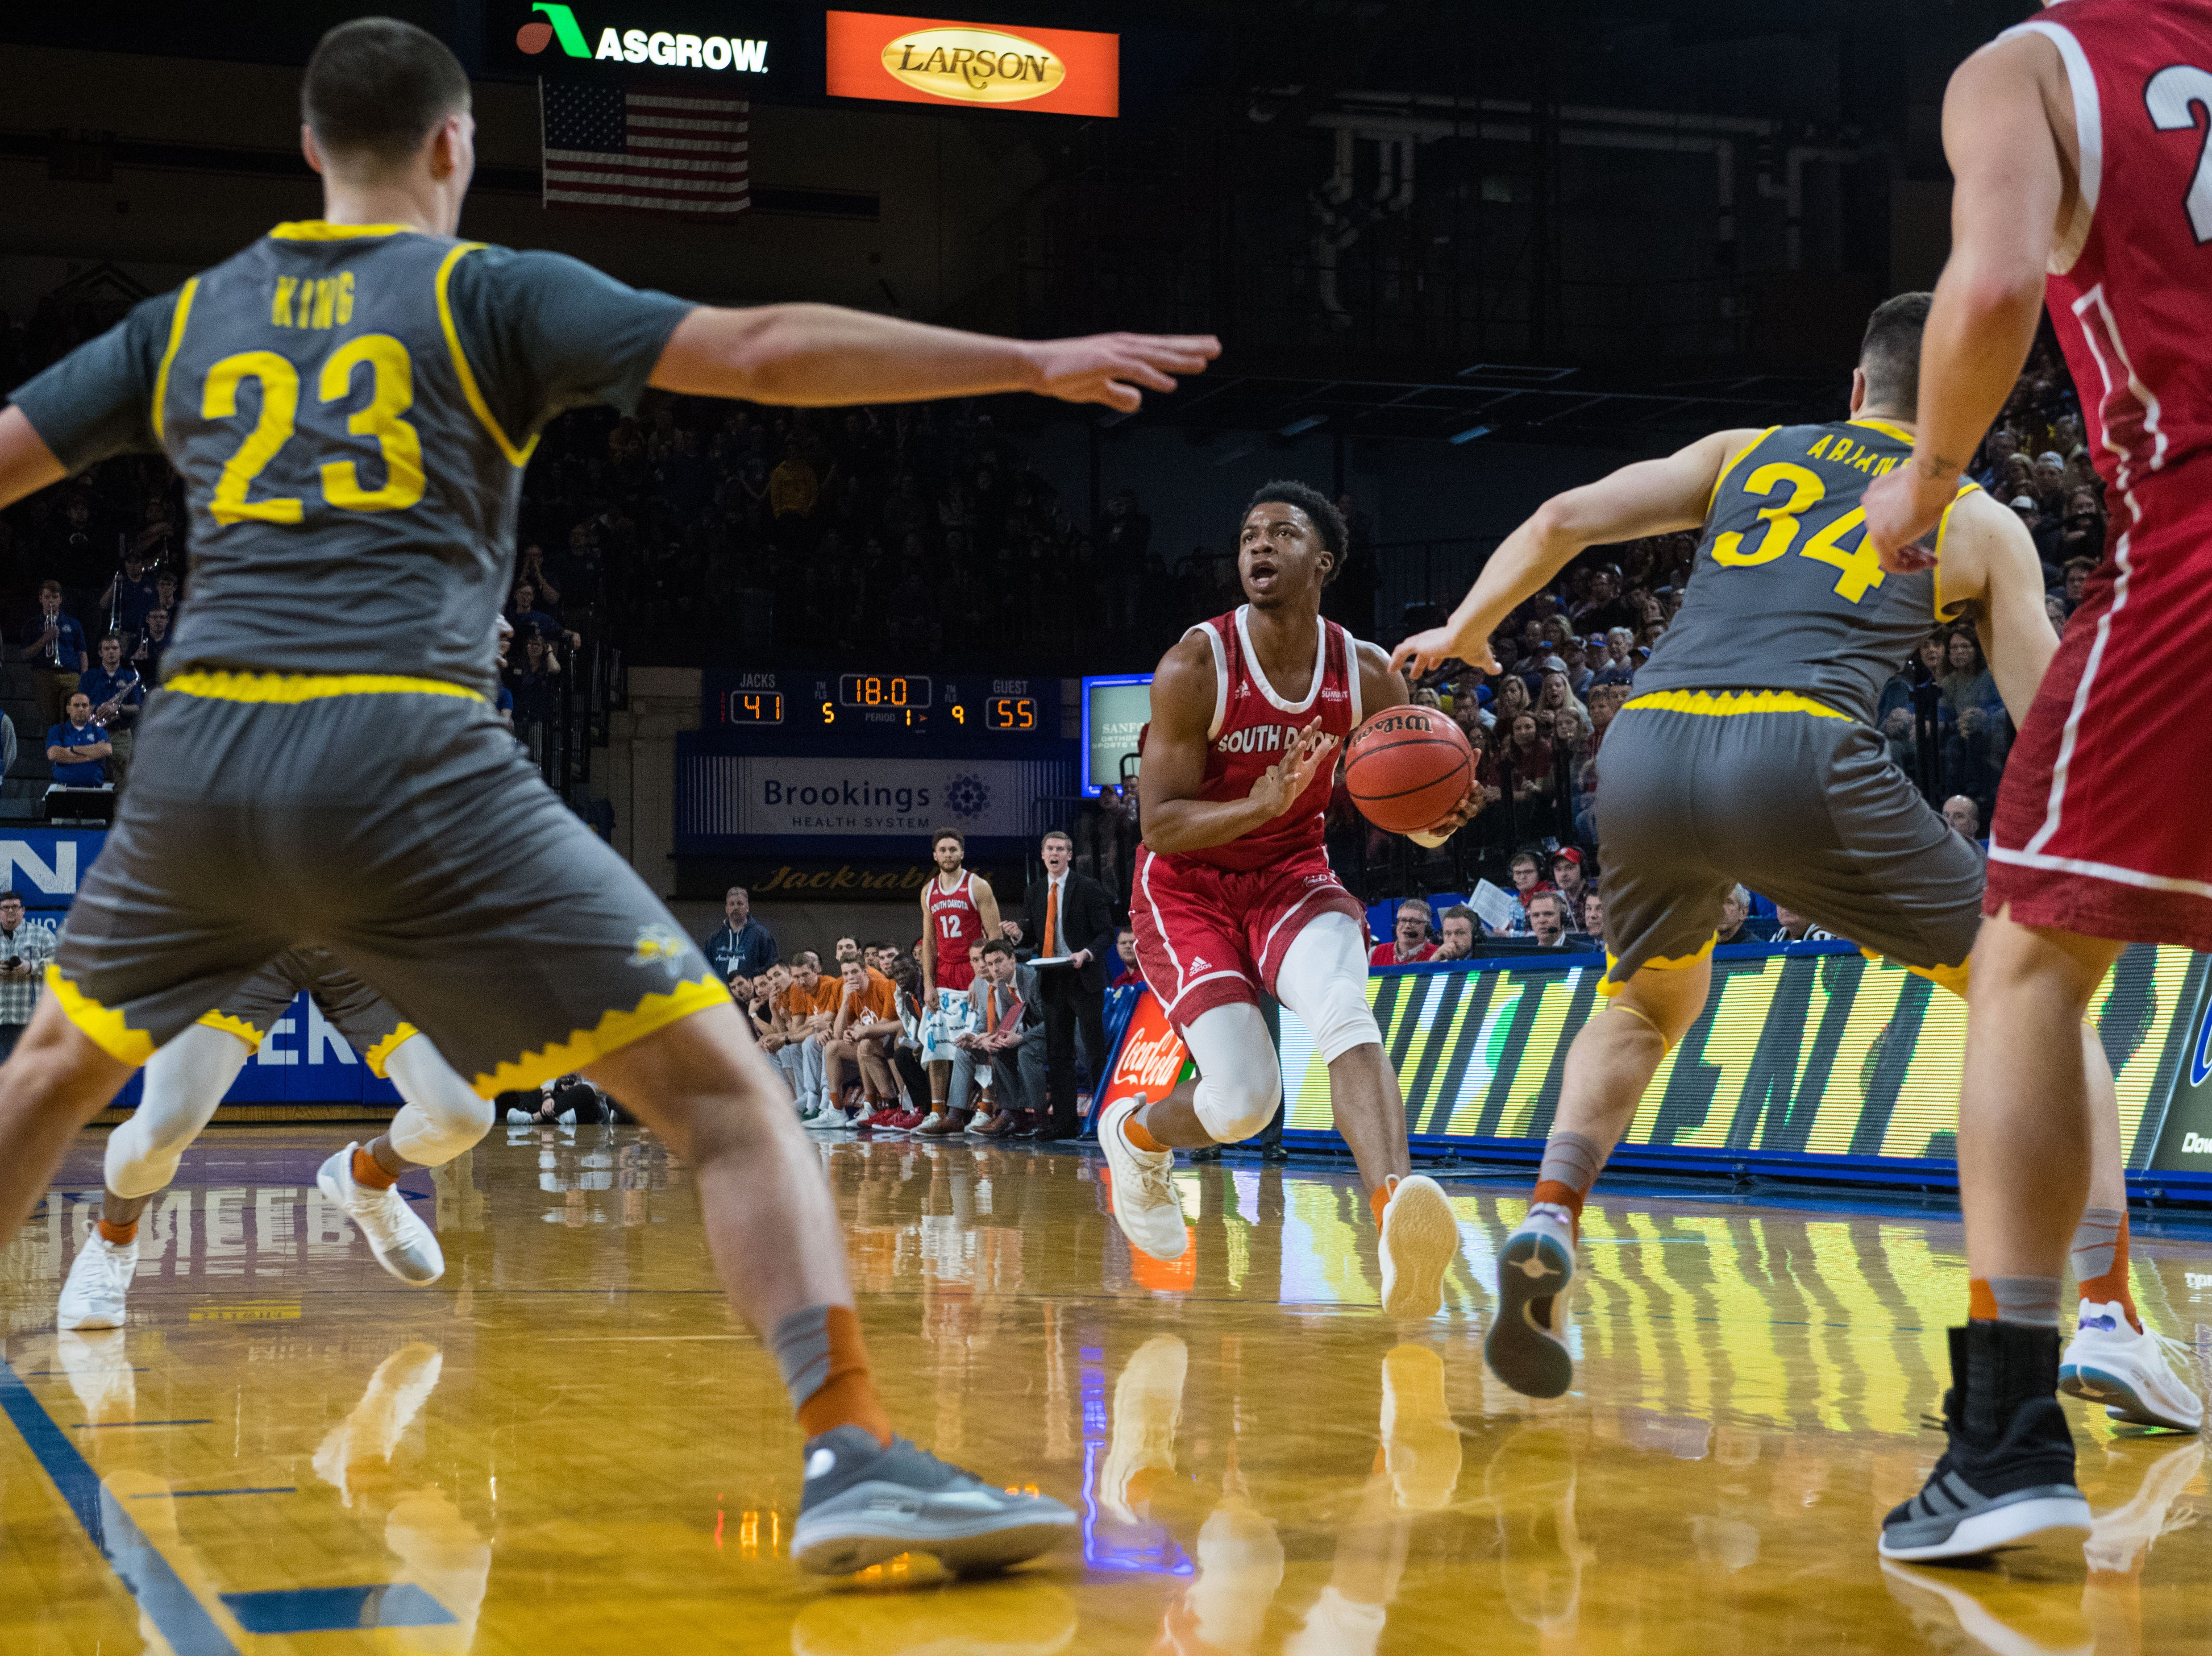 USD's Stanley Umude (0) looks to pass the ball during a game against SDSU, Saturday, Feb. 23, 2019 in Brookings, S.D.